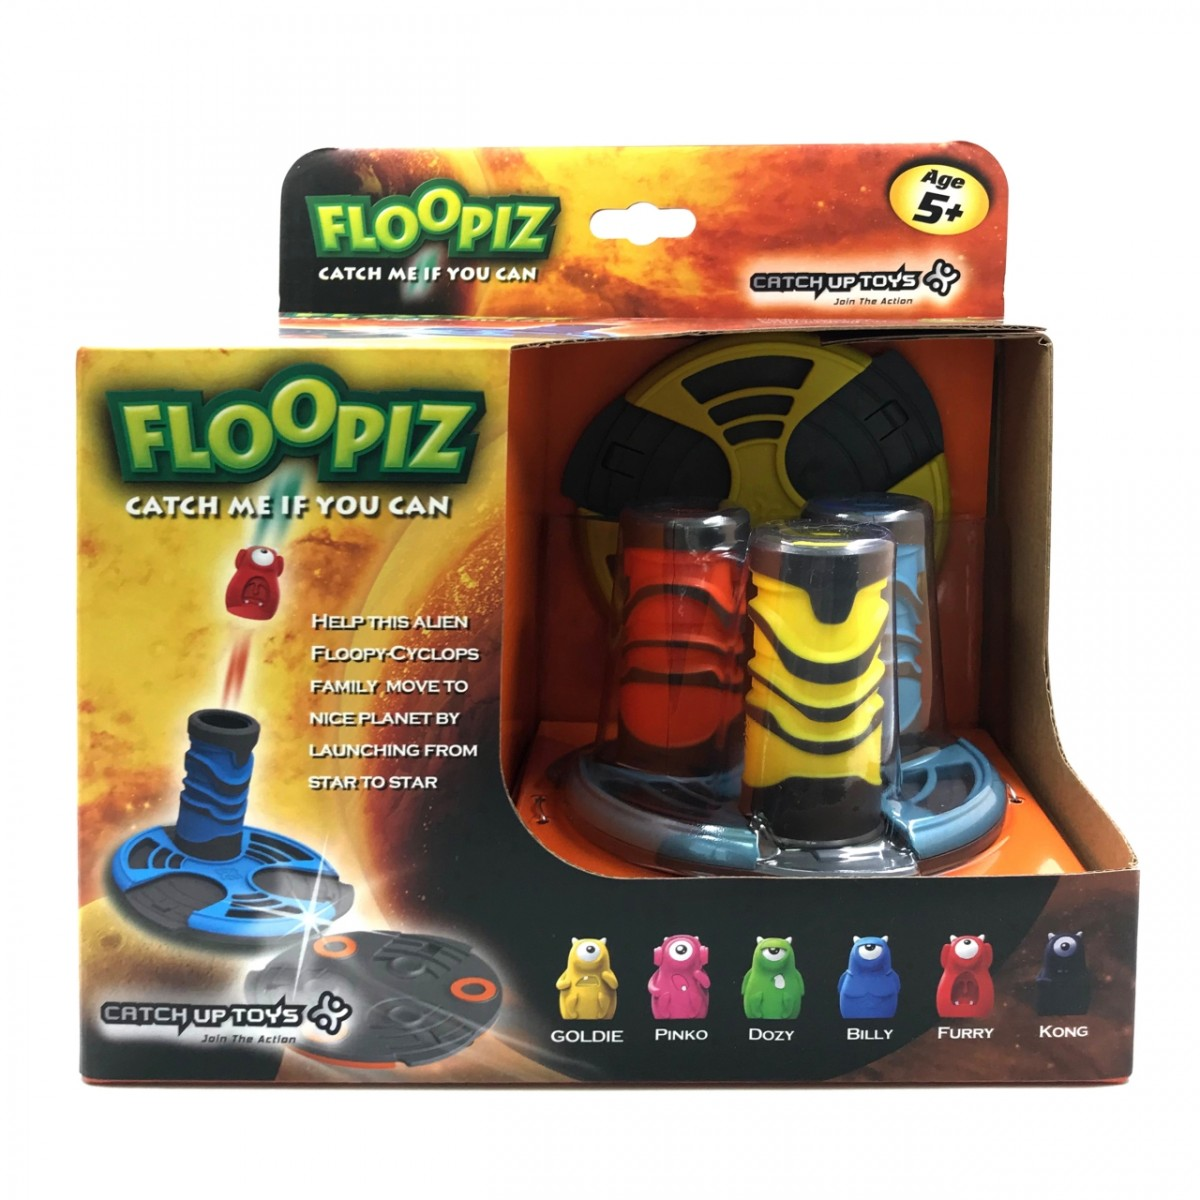 Игра CATCHUP TOYS FP-001S-STD Floopiz